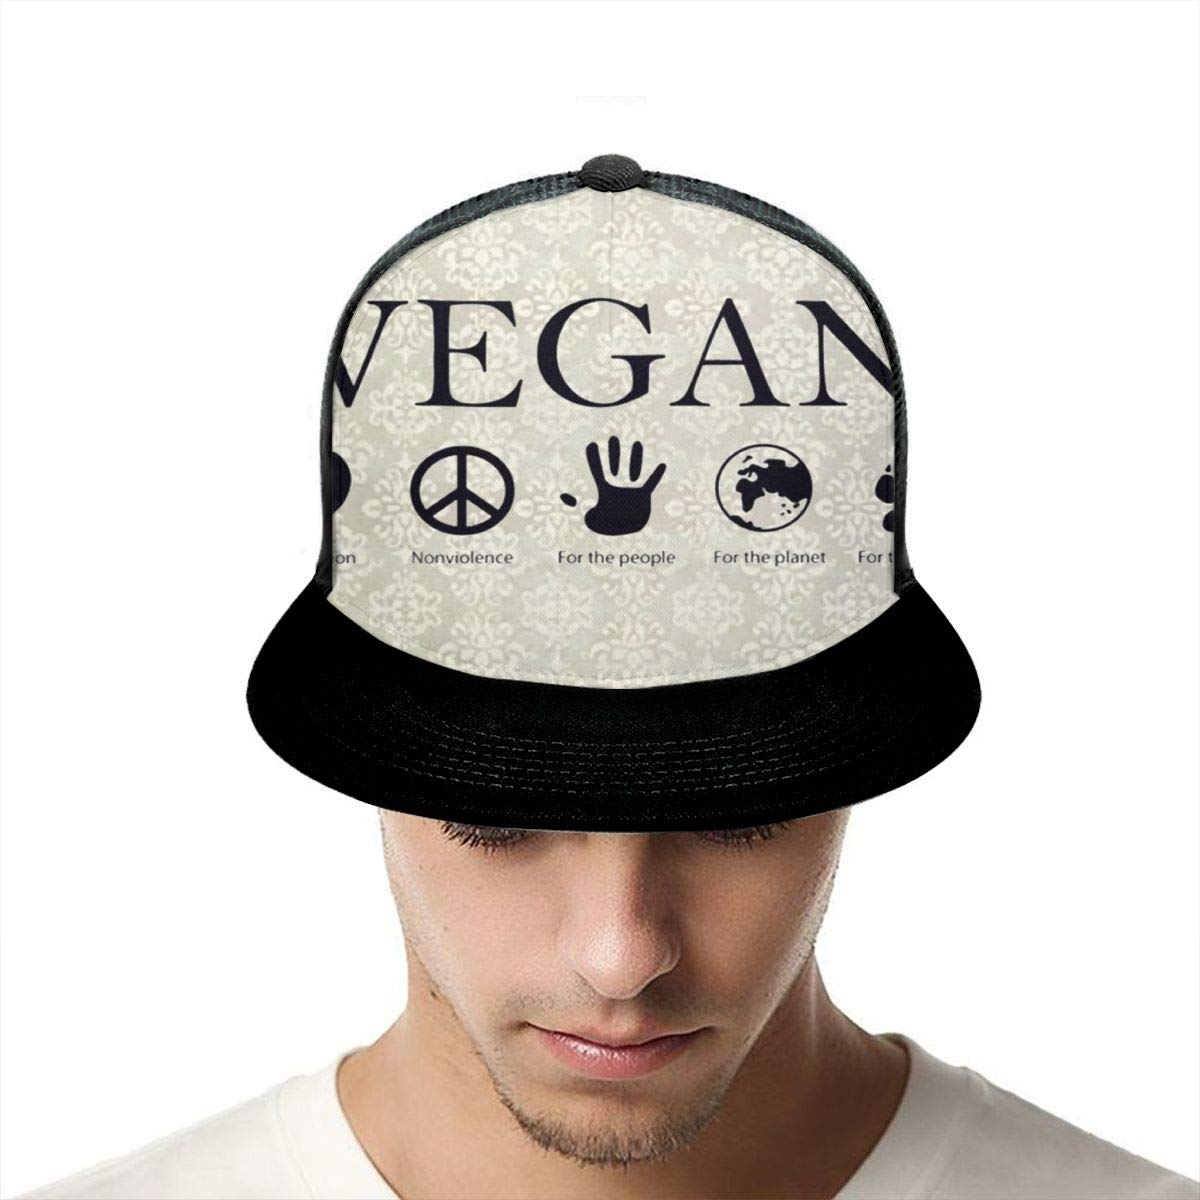 Unisex 100/% Polyester Vegan Vegetarian Baseball Cap Quick Dry Mesh Back Trucker Hat for Unisex